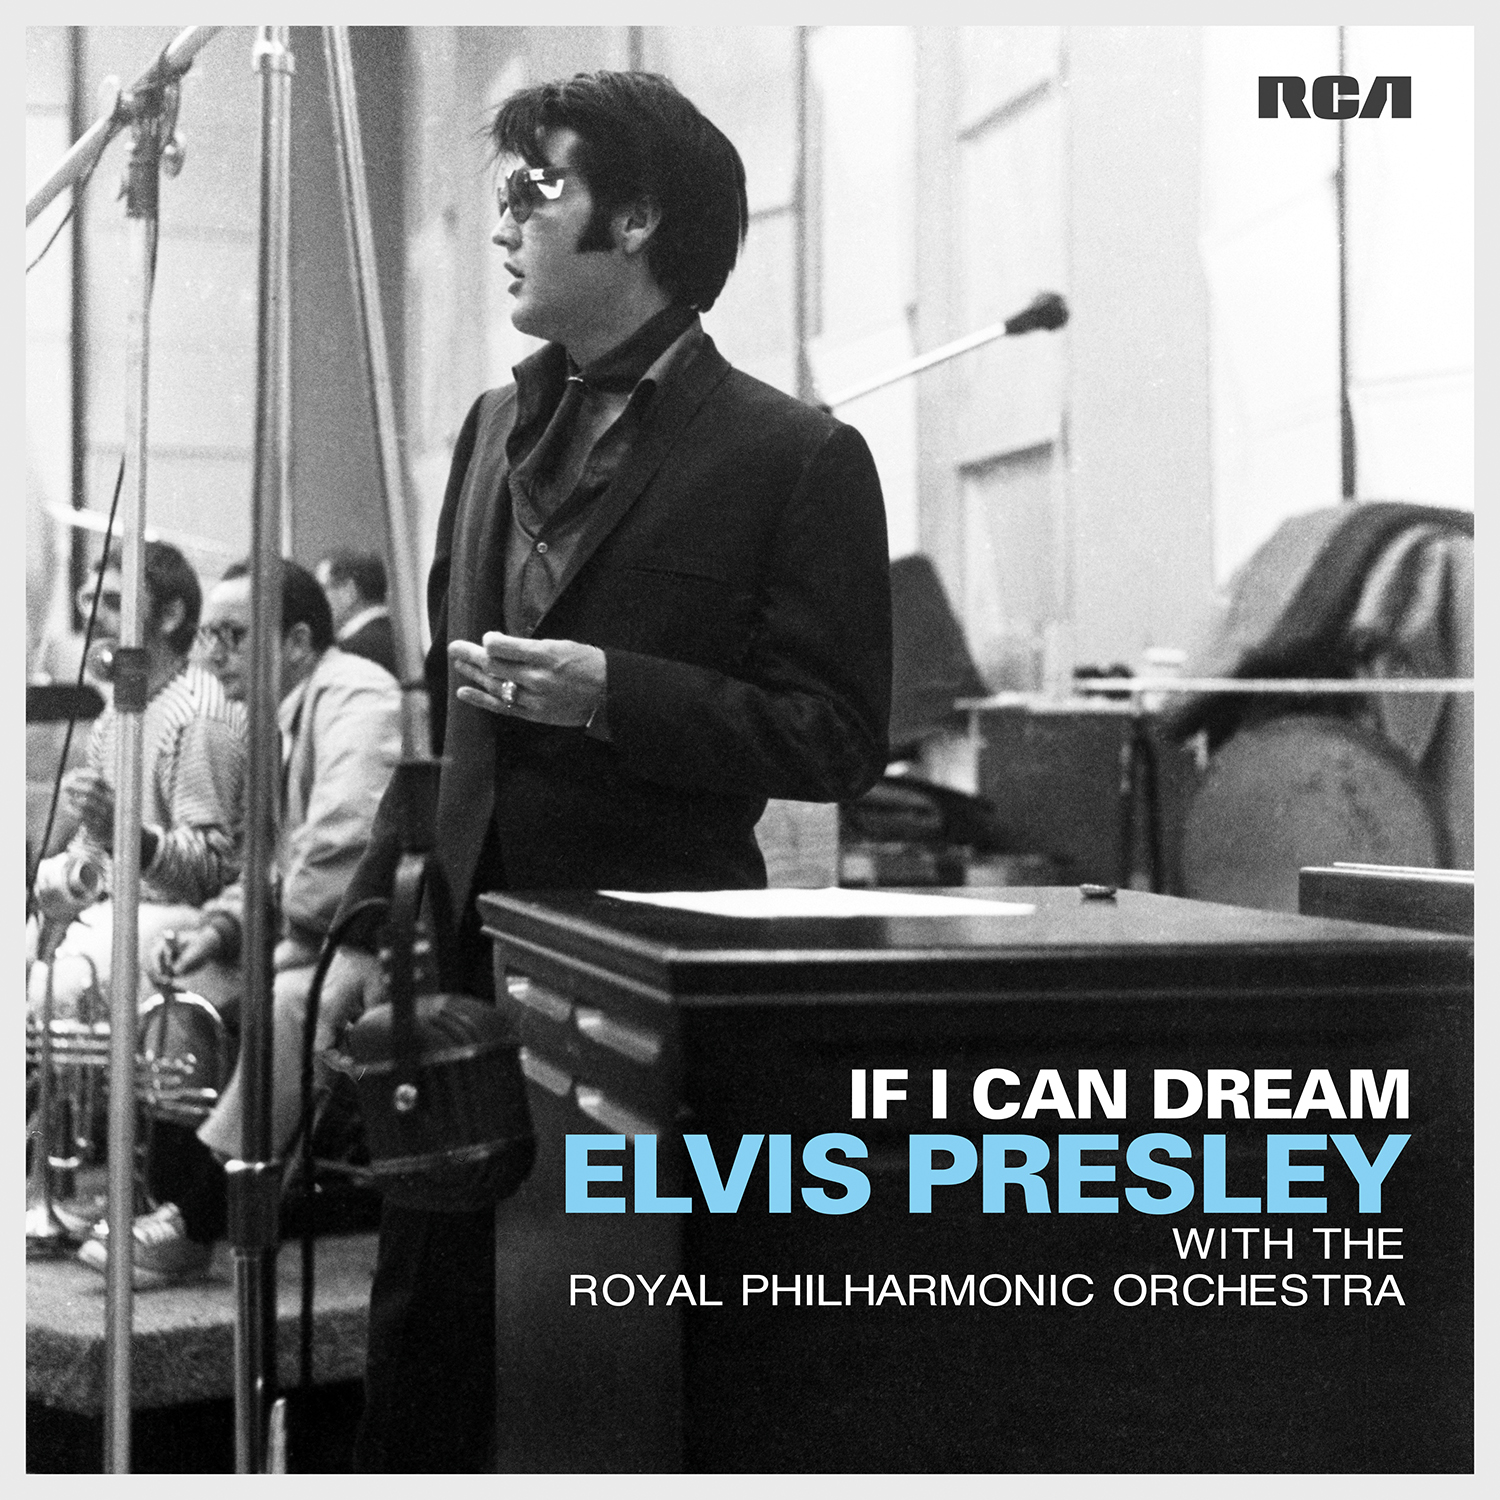 New disc matches Elvis Presley with Royal Philharmonic